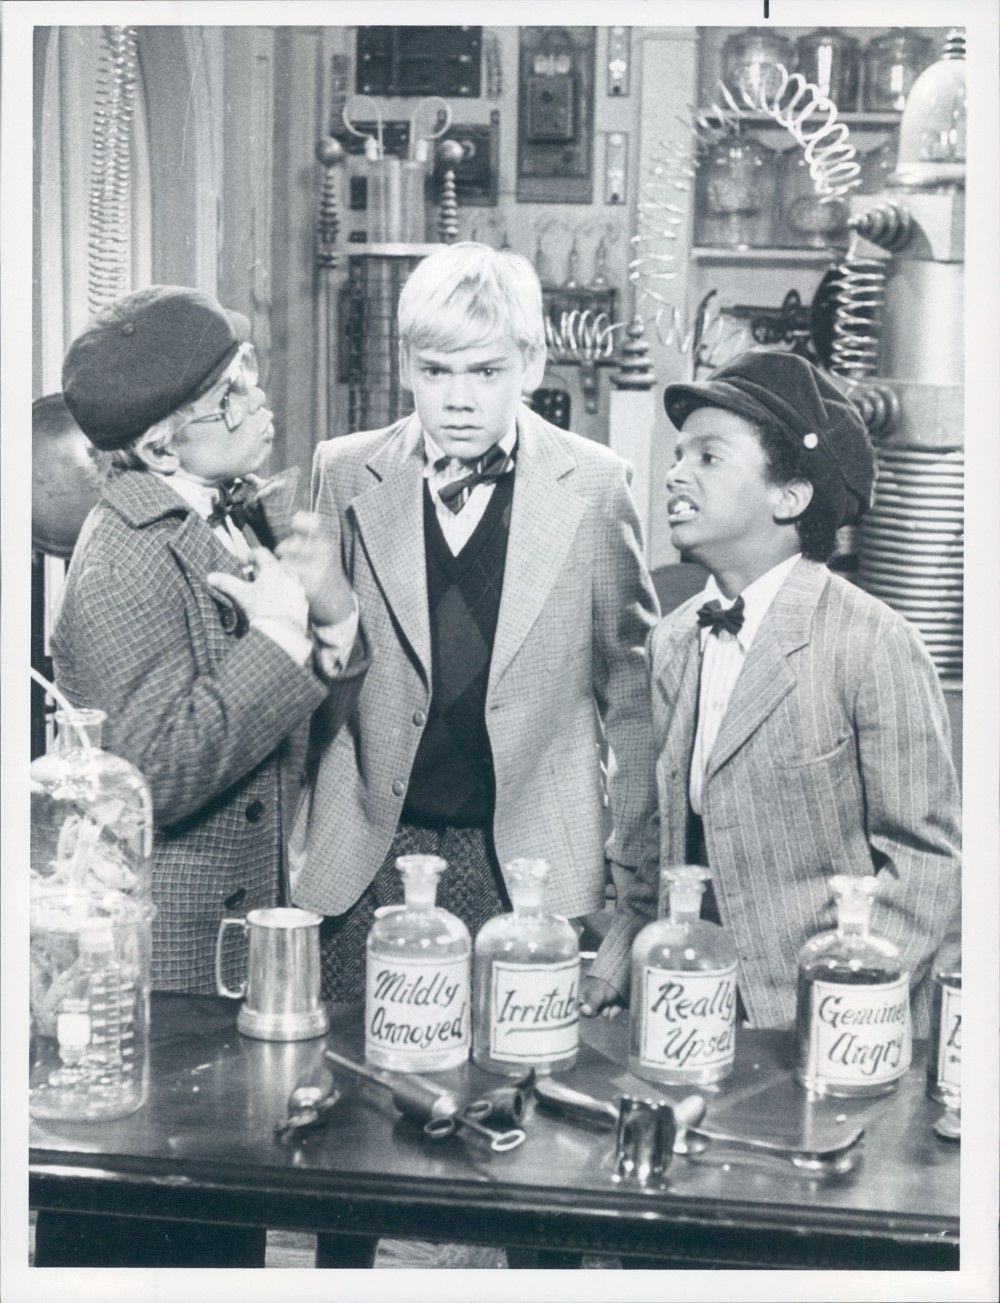 s-l16001984_Ricky_Schroeder_Corky_Pigeon_A_Ribeiro_Silver_Spoons_1980s_TV_Press_Photo